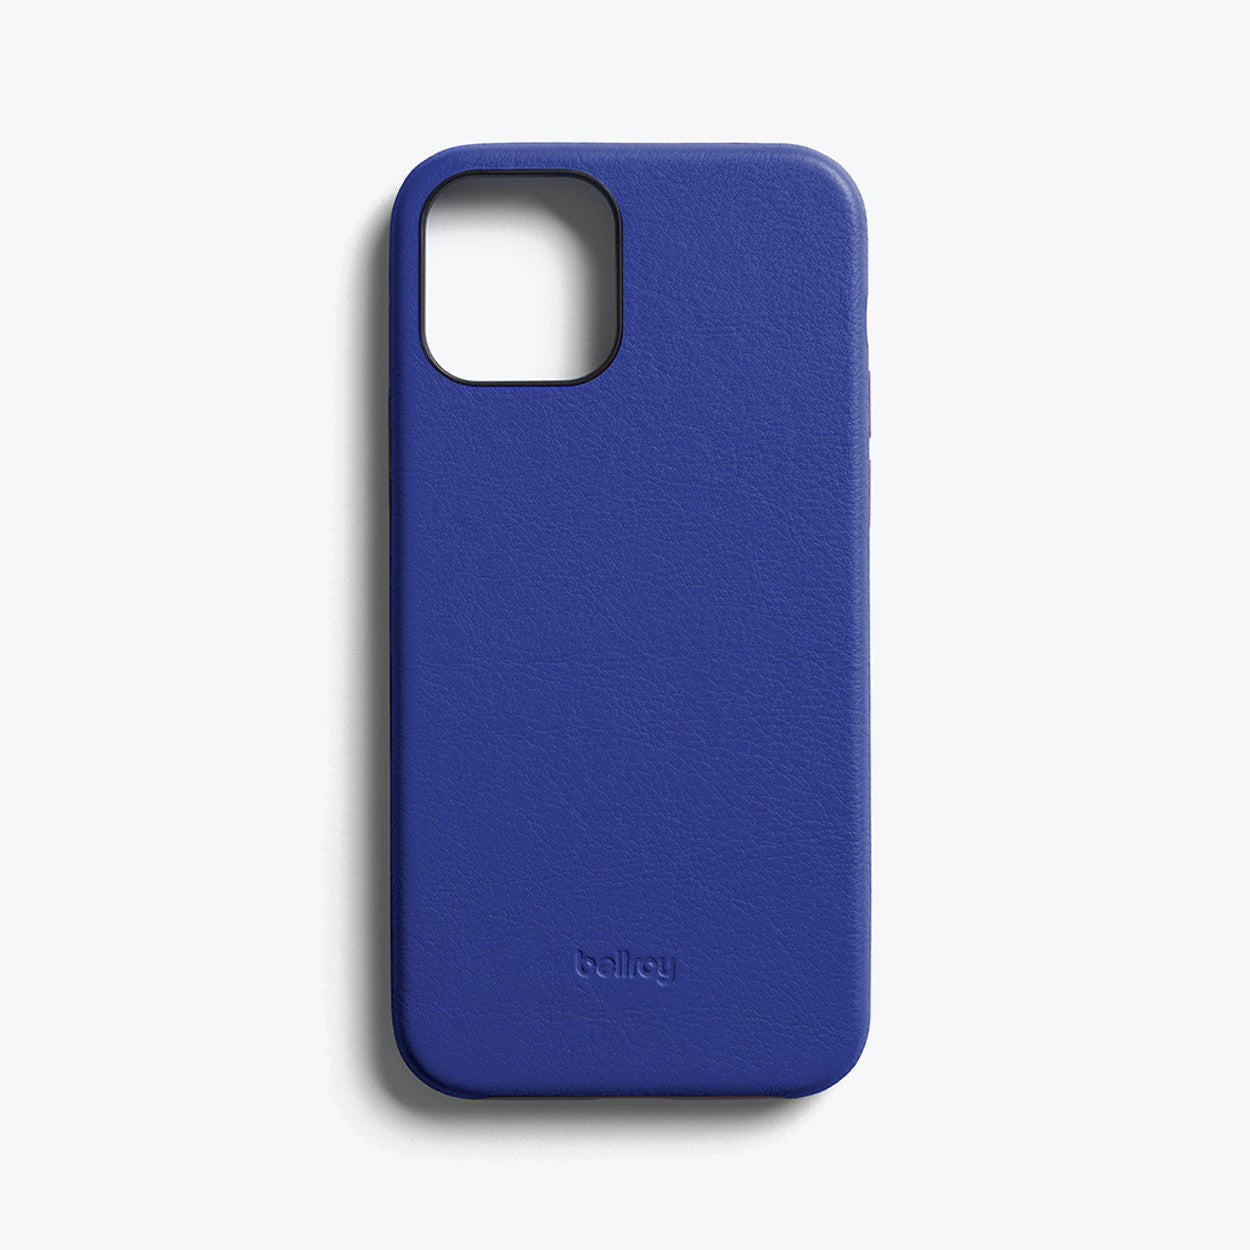 Bellroy Slim Genuine Leather Case For iPhone iPhone 12 mini - COBALT